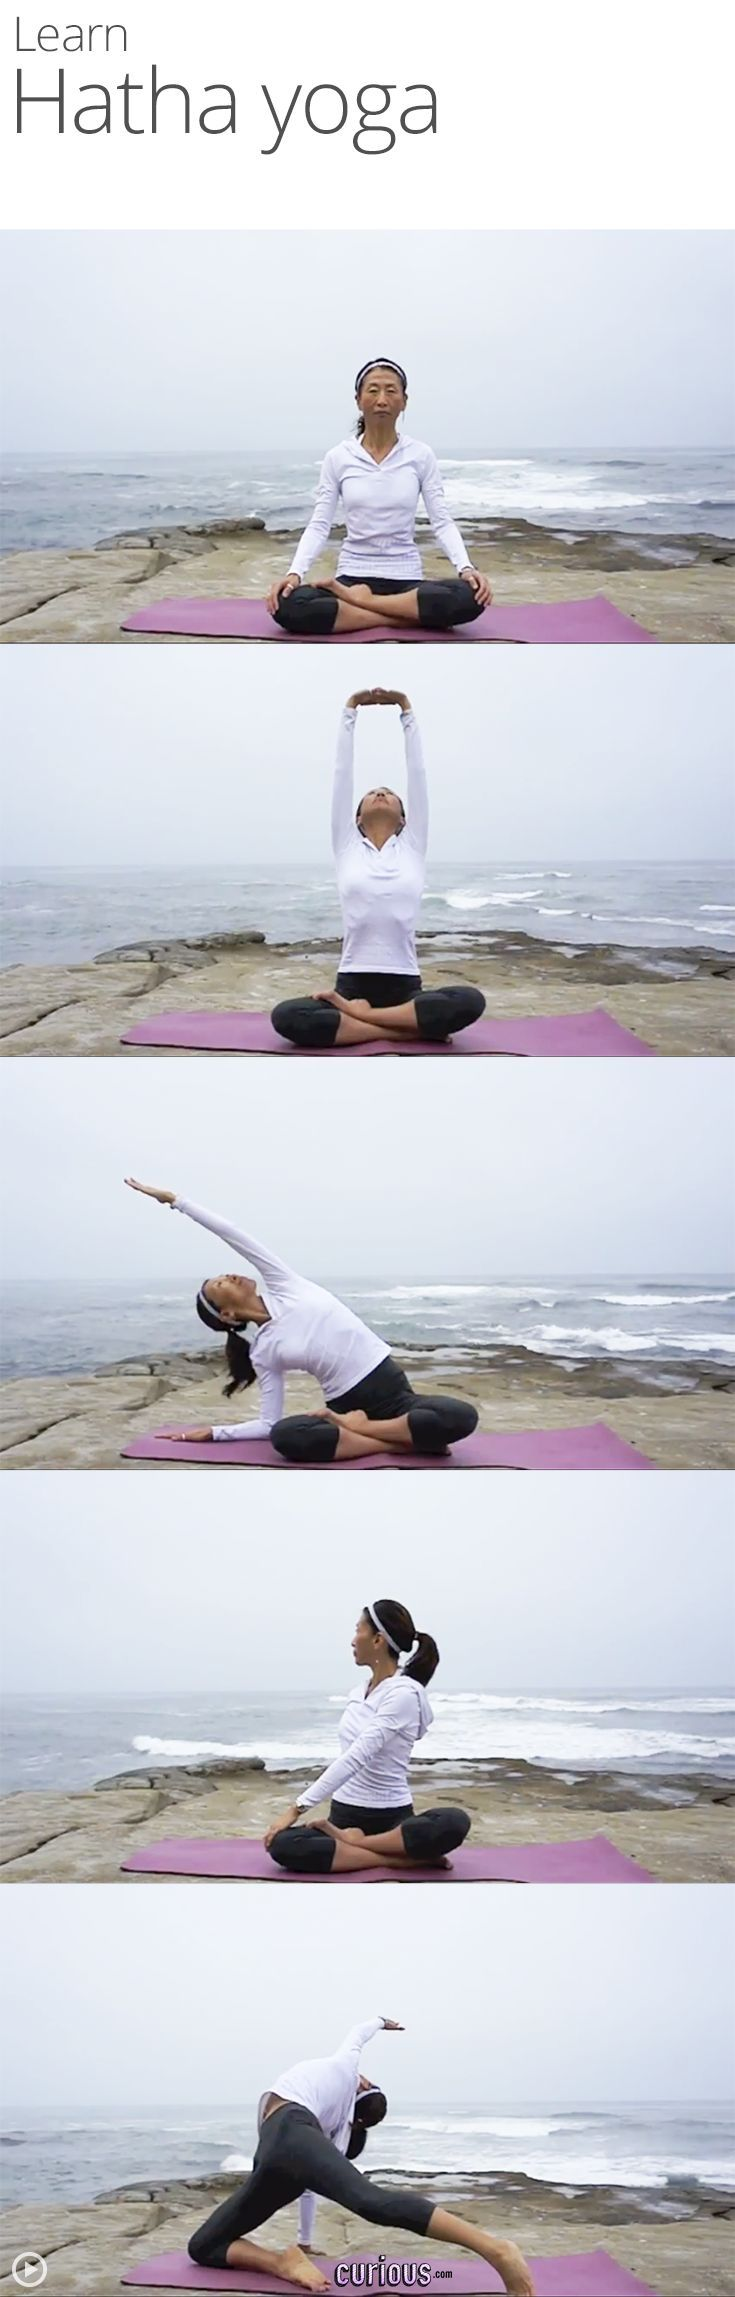 Hatha Yoga Poses Pictures, Photos, and Images for Facebook ...